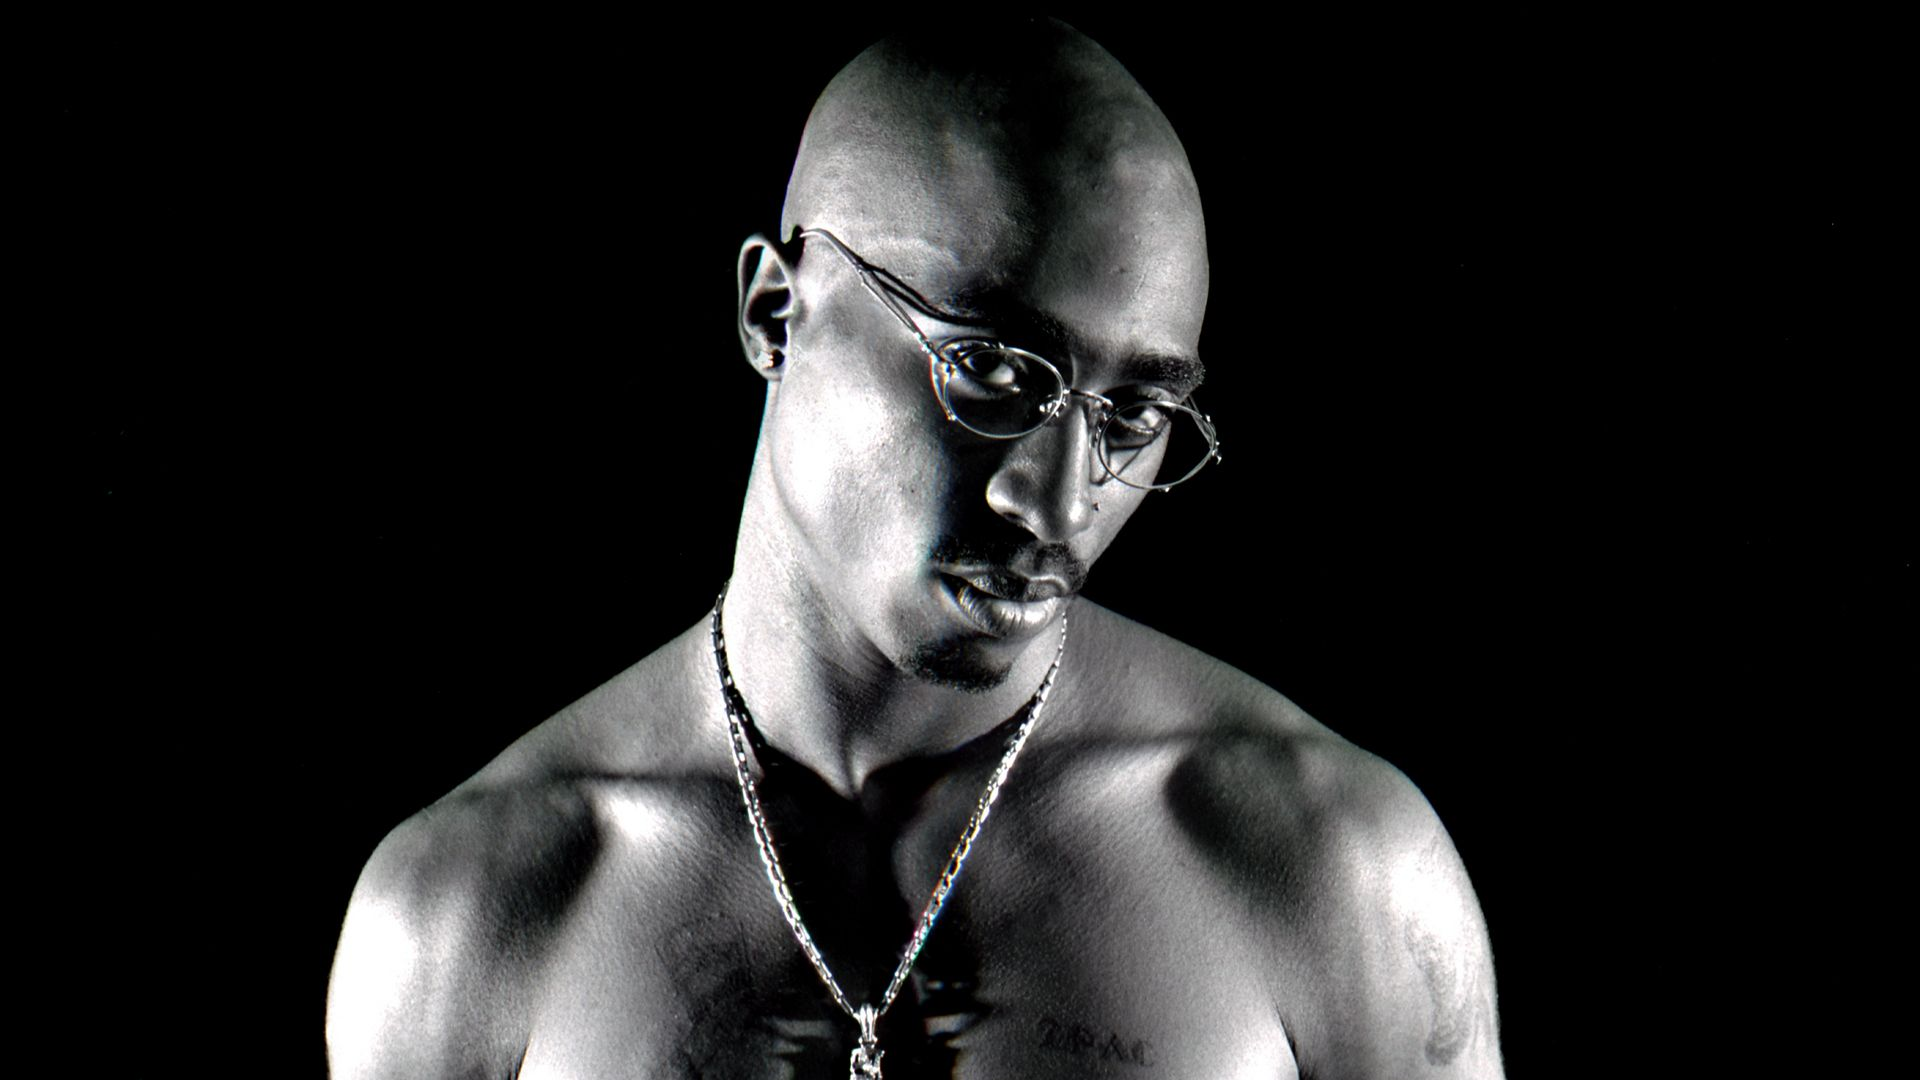 Download Tupac Live Wallpaper Thug Life for android, Tupac